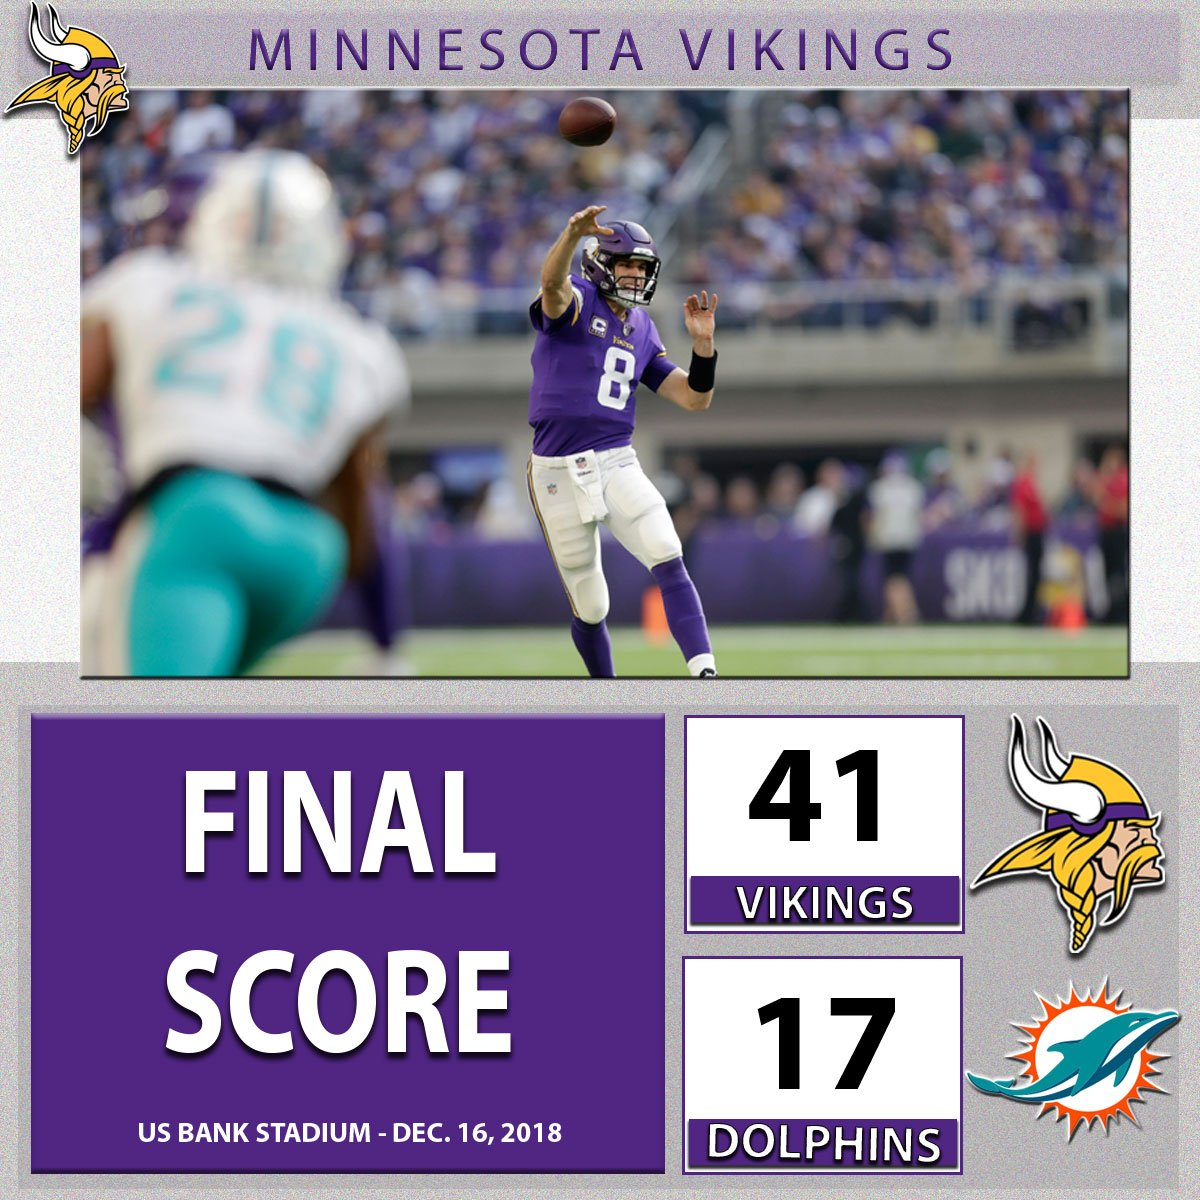 A commanding victory for the #Vikings in their first game under a new offensive coordinator. What did you think of the offense today?